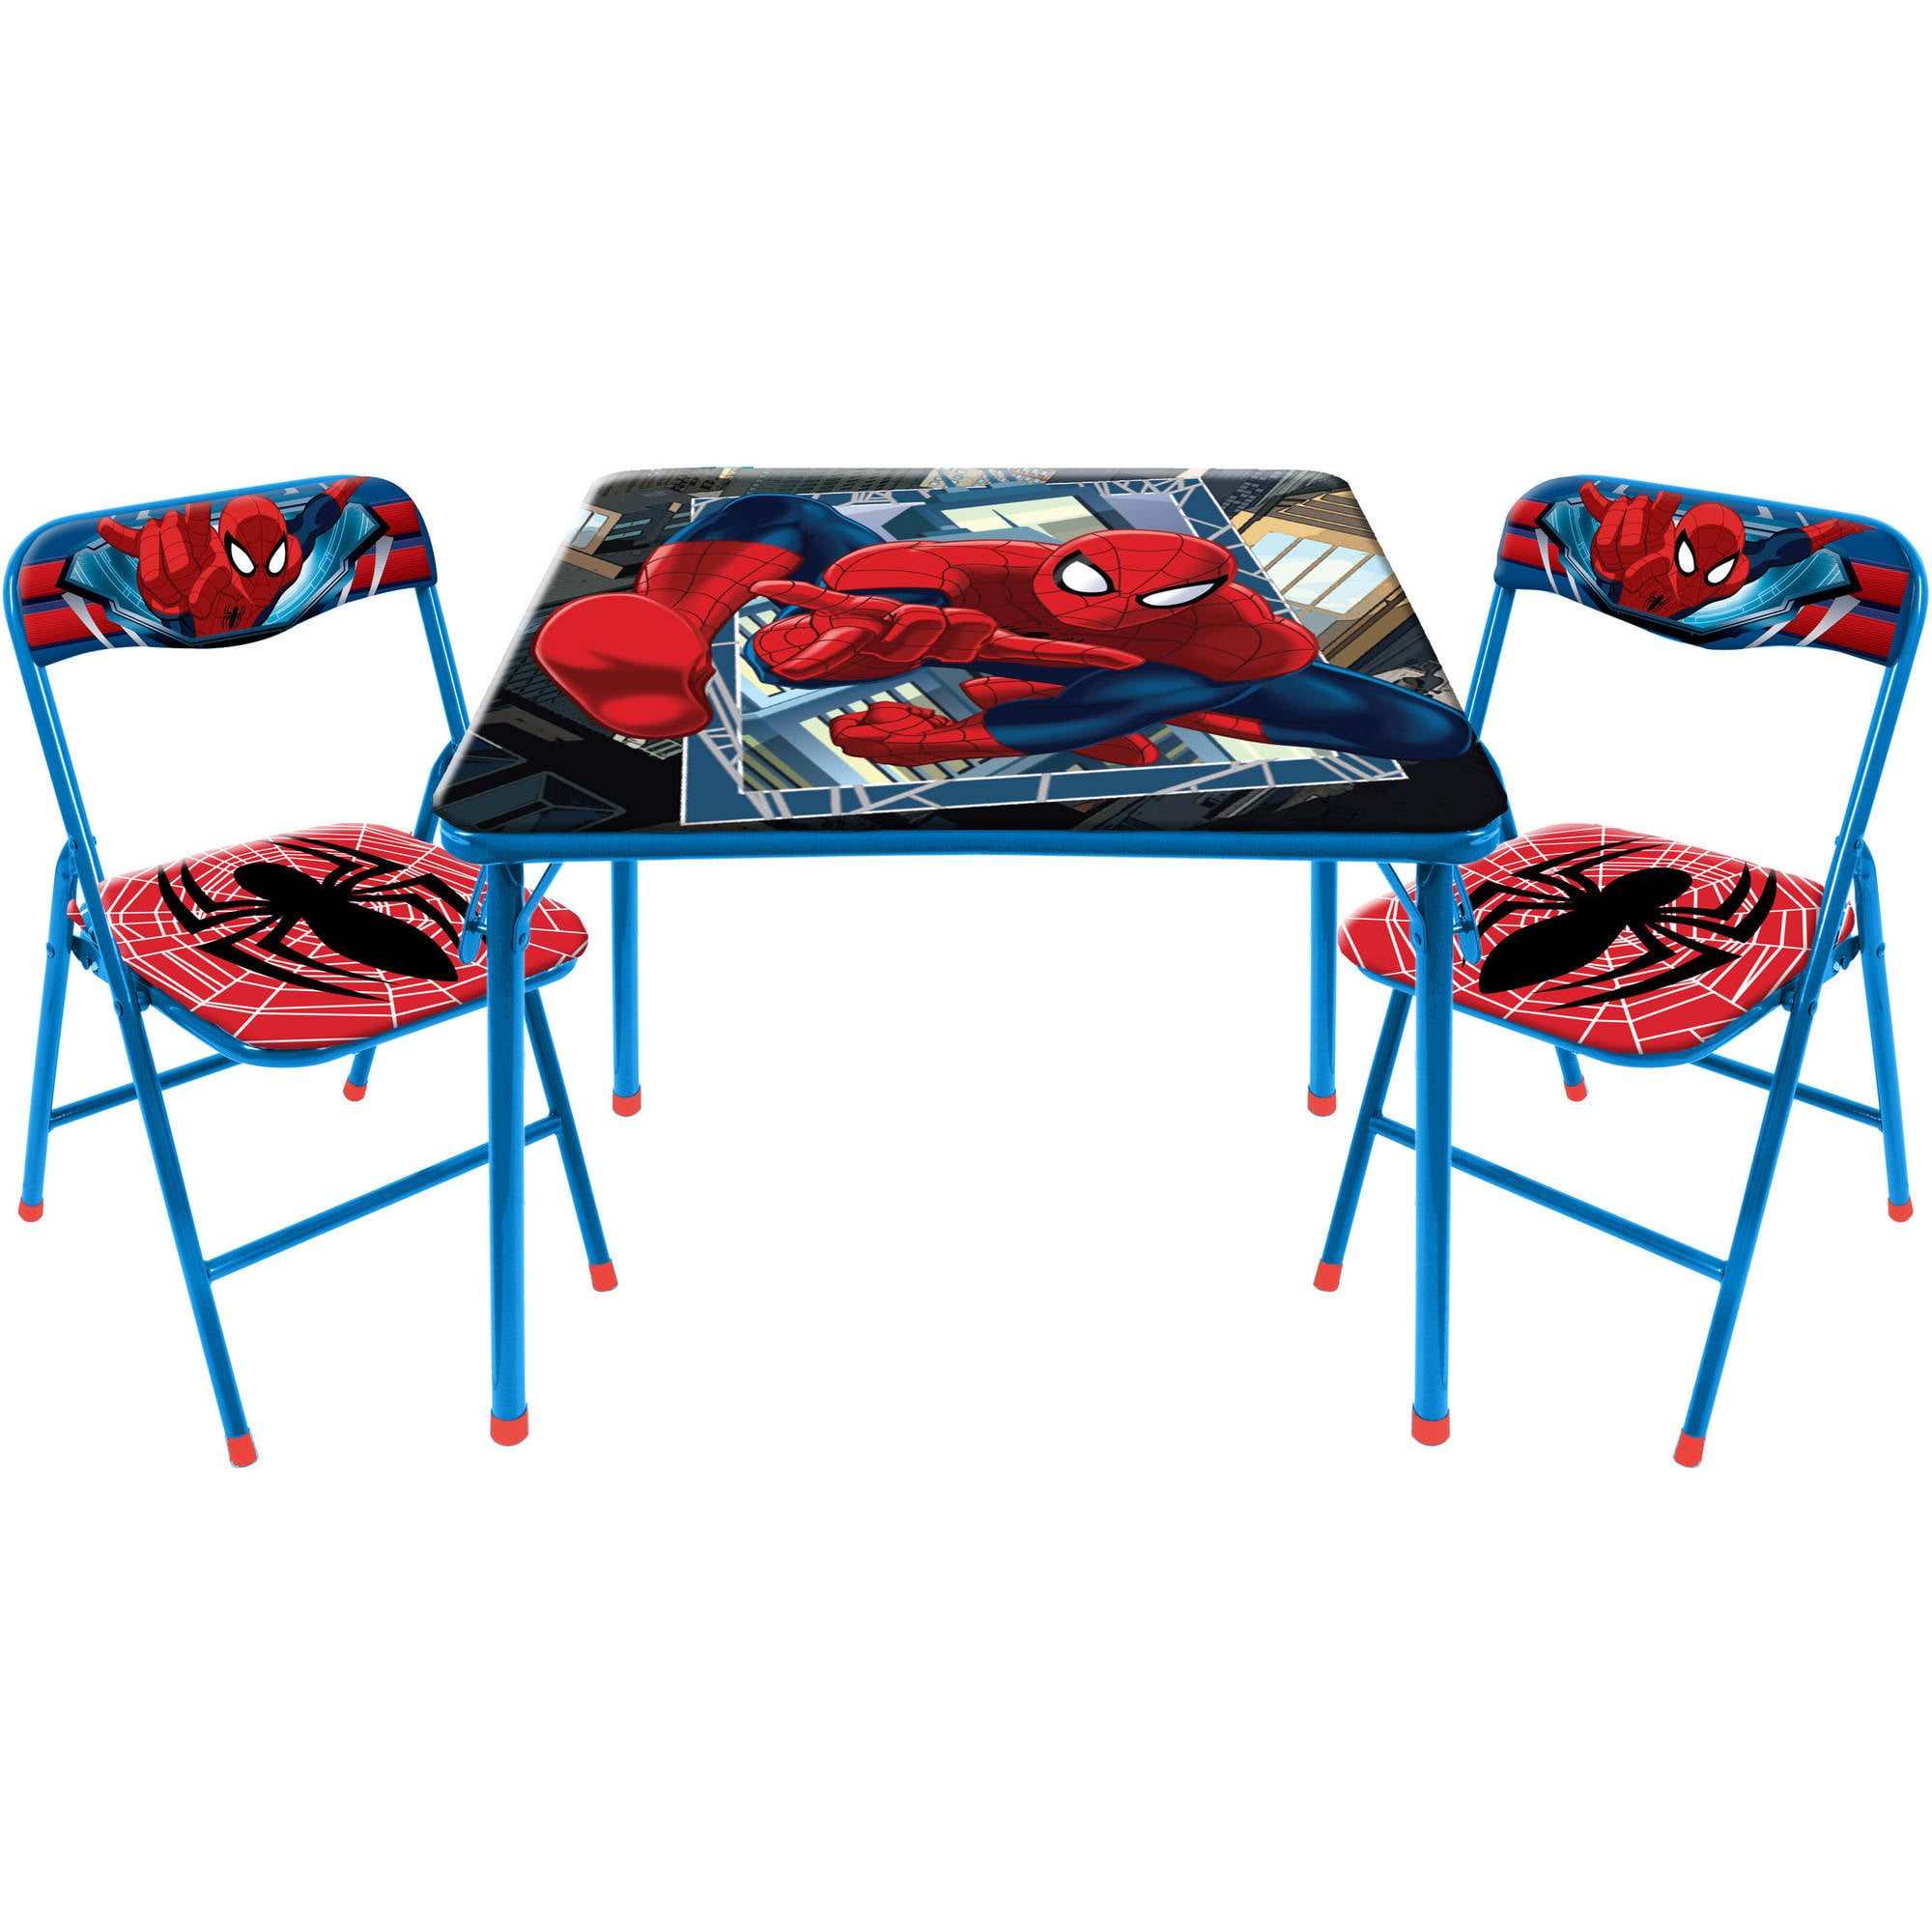 Toddler Desks Chairs Walmartcom